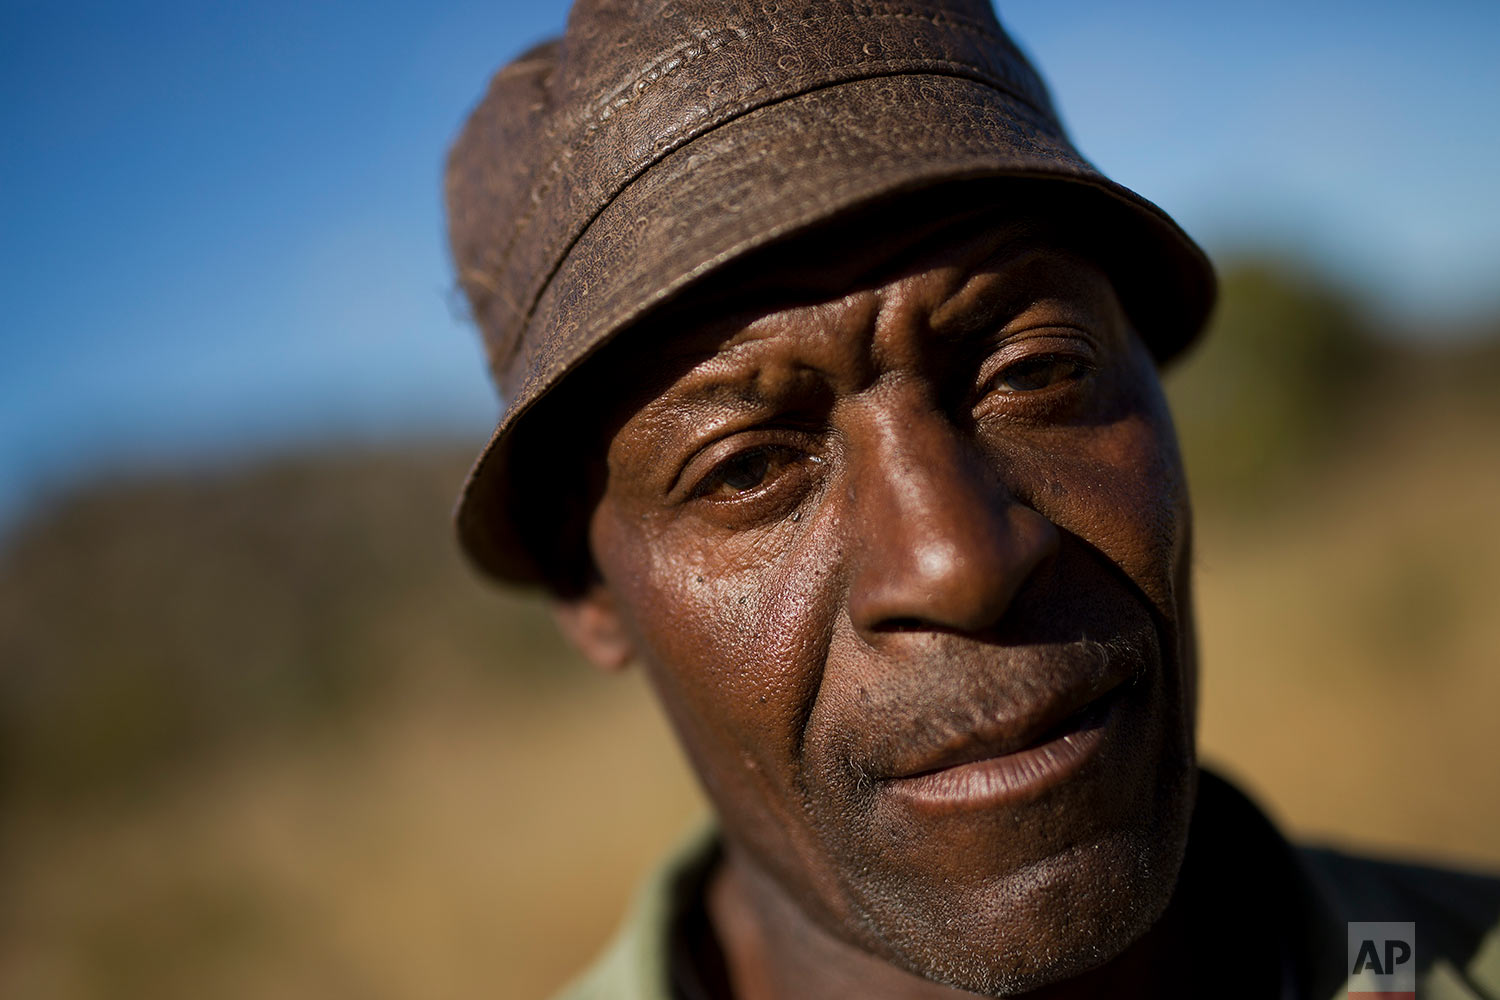 Isaiah Nkomo poses in his fields near the village of Whitewater in the Matobo hills in Zimbabwe. Nkomo has been looking for his missing brother Simimba for over 30 years. Simimba fell victim of Zimbabwean soldiers during the Matabeleland Massacres. (AP Photo/Jerome Delay)